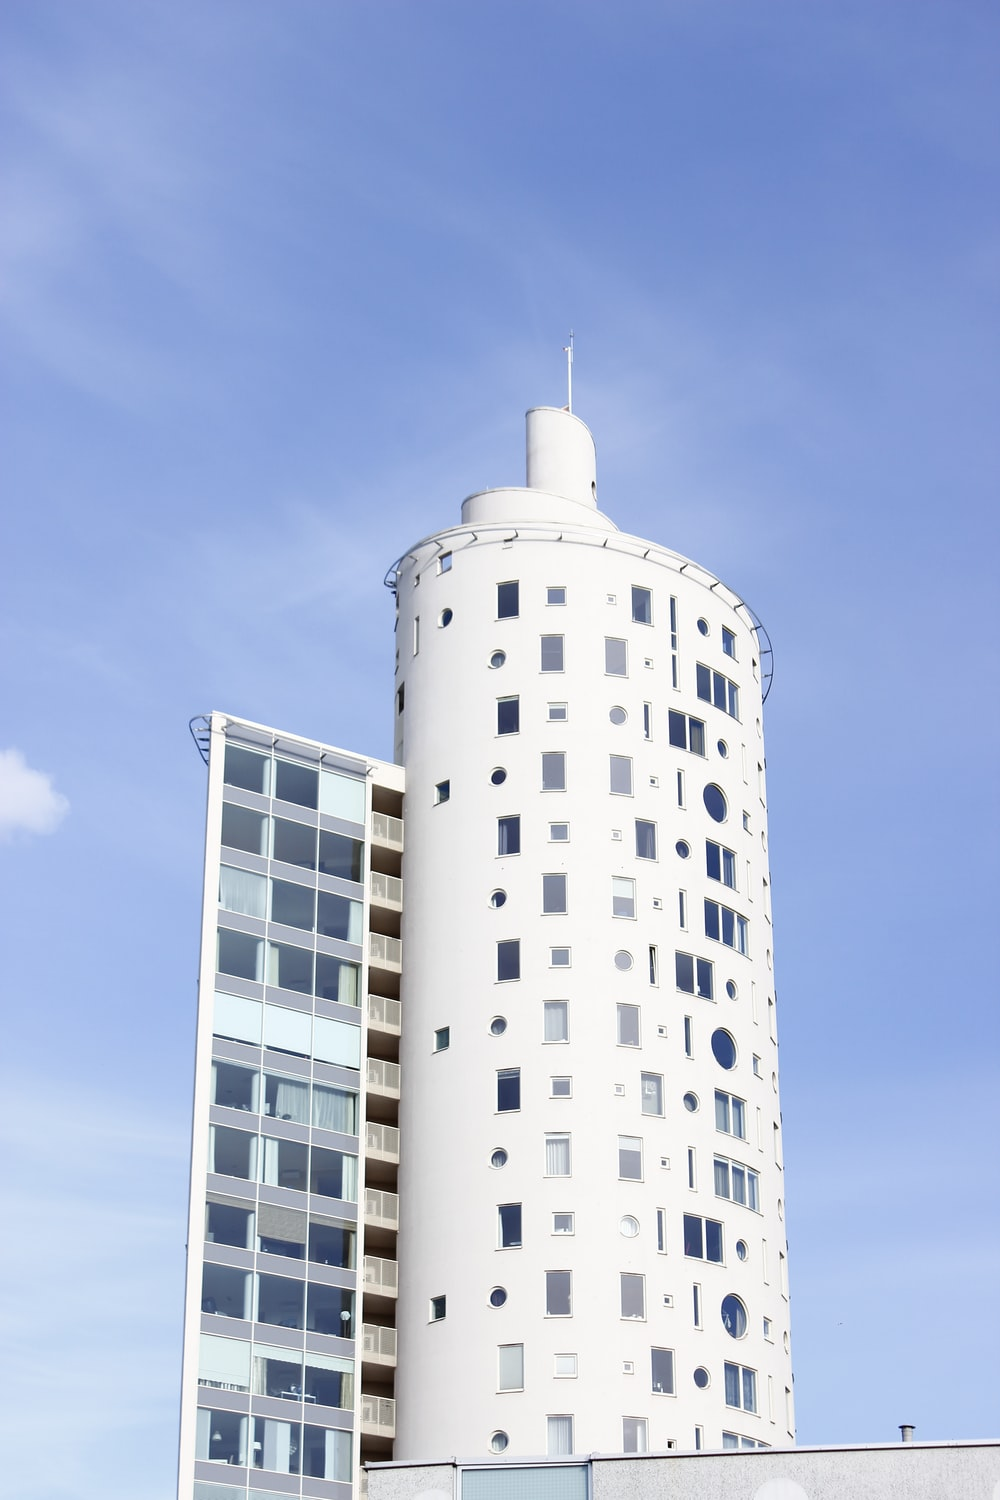 white tower building under blue and white sky during daytime